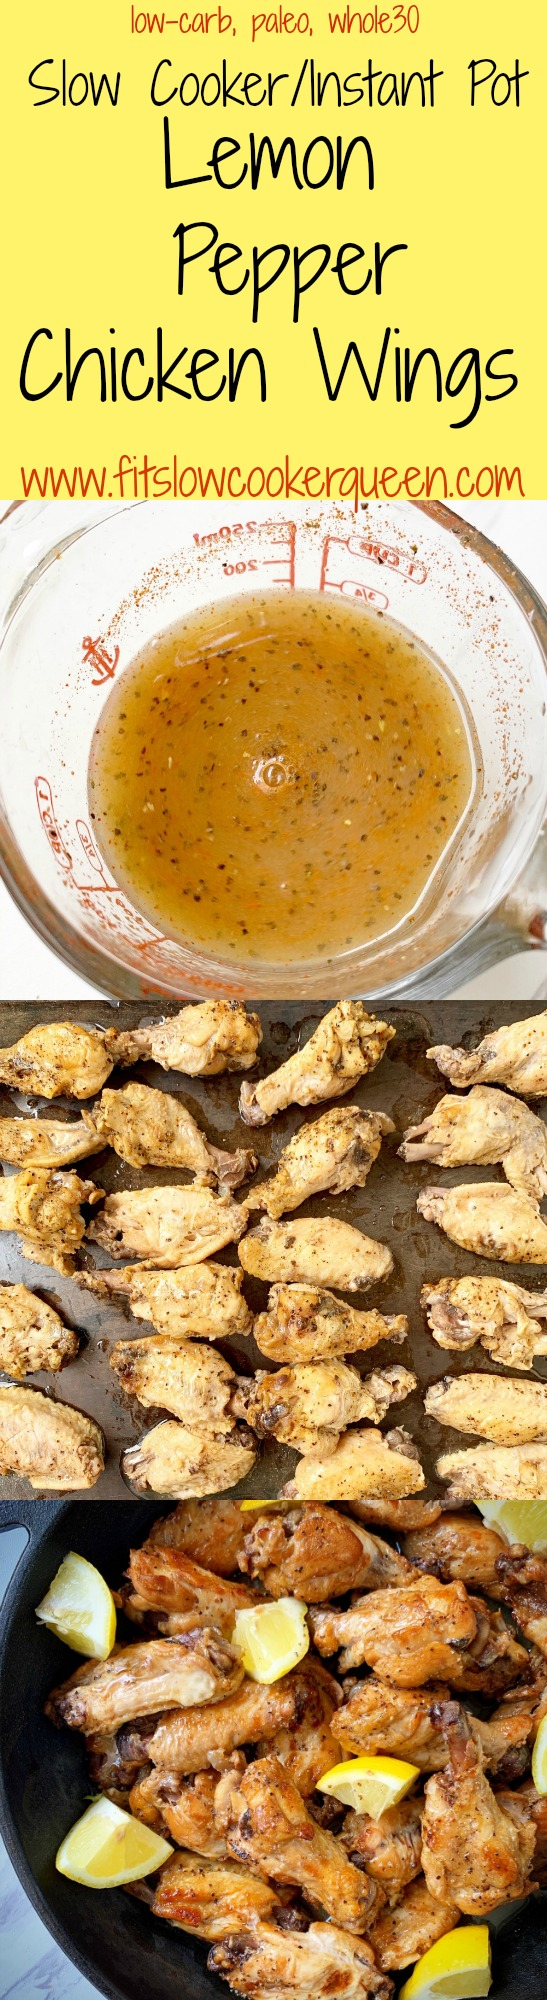 another pinterest pin for {video} slow cooker_instant pot lemon pepper chicken wings